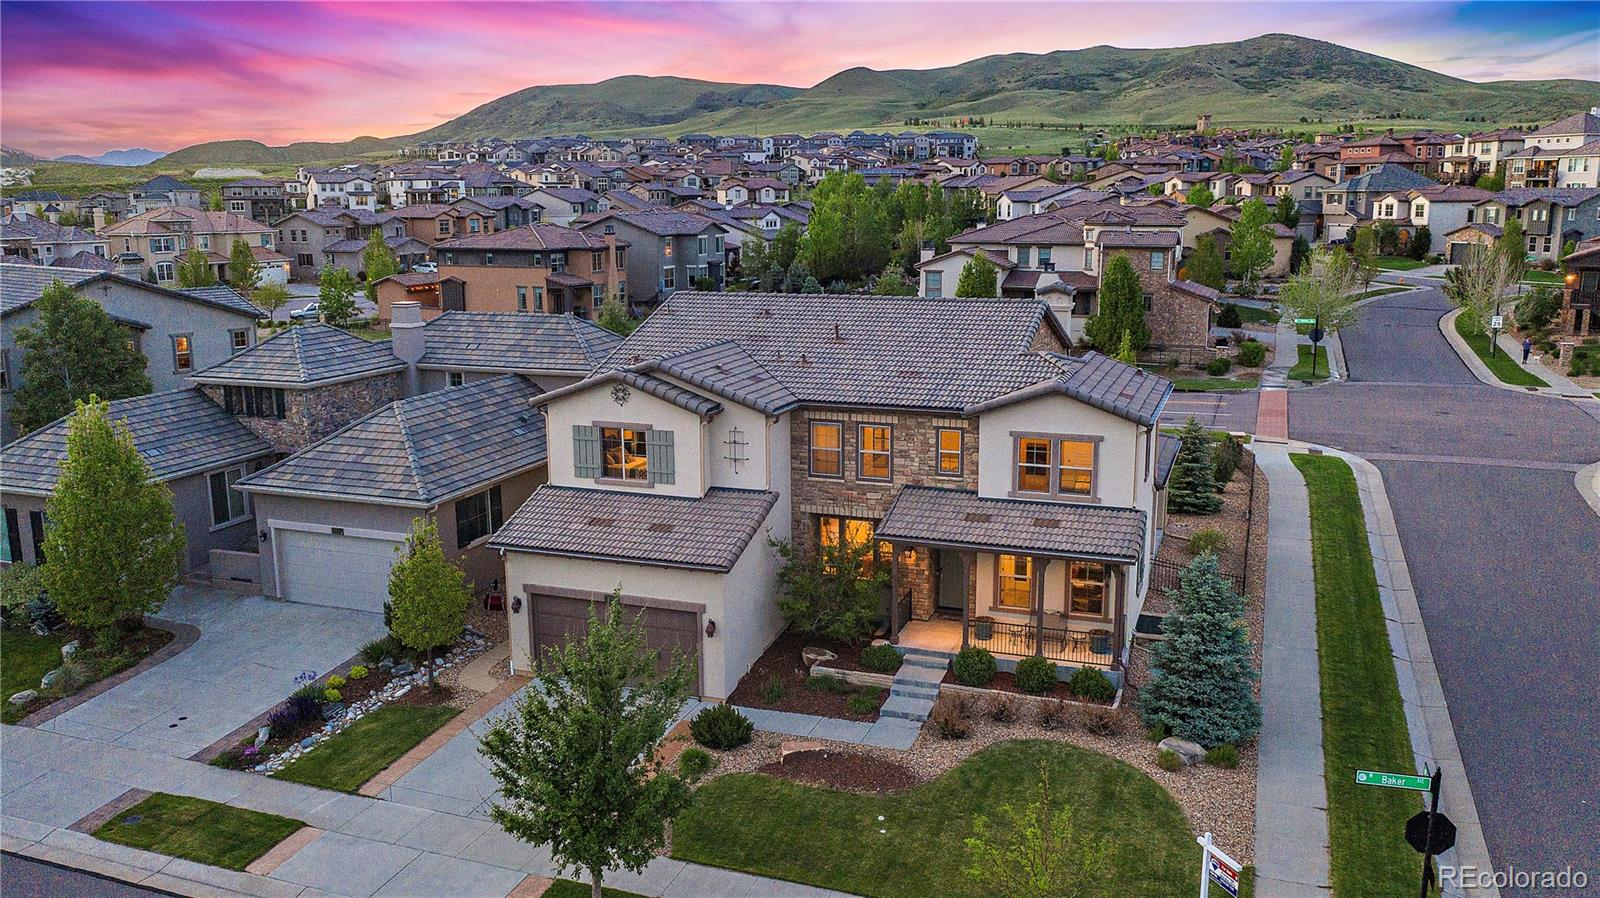 "Infinity Home Collection Vita Plan 570 in Solterra Colorado! Here is your opportunity to Own an Infinity Home on a 10,000+ sq ft large corner lot .Only one neighbor to the West and NO neighbors behind the home.Soaring, light-filled space lends a dramatic impact upon entering this spectacular home .The Vaulted Great room with Stone fireplace is filled with ample amounts of natural light. Main floor features a private office with french doors , built ins and addtional recessed lighting. Formal Dining room is private and also has addtional recessed lighting with a butler's pantry with tile back splash.The large chef's kitchen features a Sizeable Kitchen Island, Gas Cook top , Double Ovens , Tile back splash and under cabinet lighting. This home has a covered private patio that leads to a substantial flat private fenced back yard with an addtional Stamped Concrete patio area. Fully landscaped front and back yard.3-car garage-perfect for storing all your recreational equipment. Minutes to Bike/Hike Green Mountain, Bear Creek Lake Park and Red Rocks Park .Many community events at the Solterra Retreat. Infinity Home Collection Screams Quality - don't miss out on this home and location.If you would like a ""live tour"" through Zoom/Skype/Facetime-please contact Listing Agent."